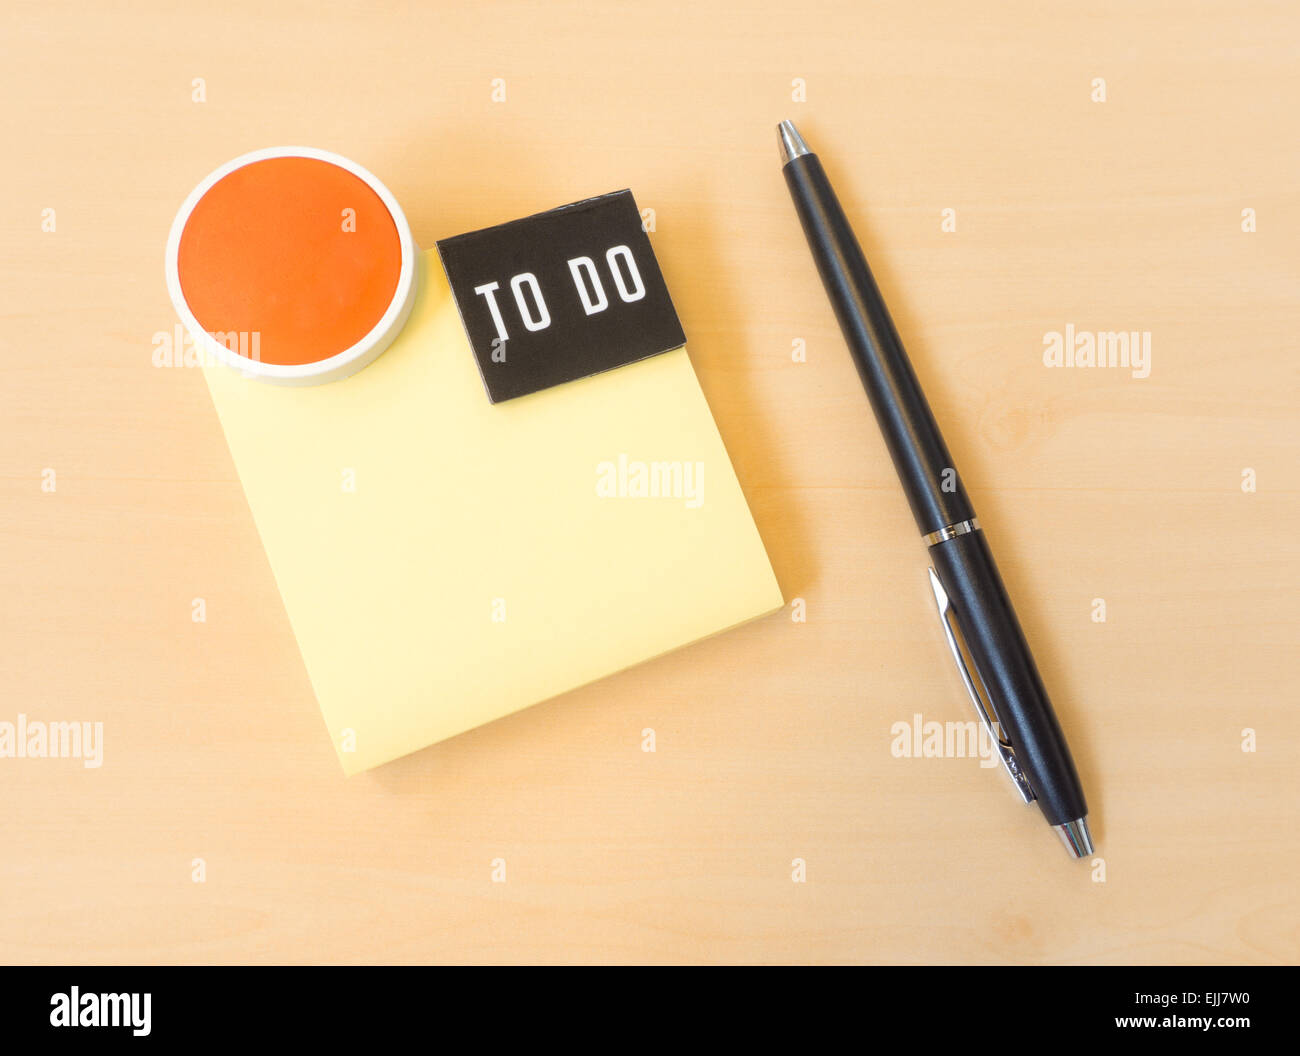 To do List Yellow Postit with Smile Icon and Black Pen on Wood Texture - Stock Image